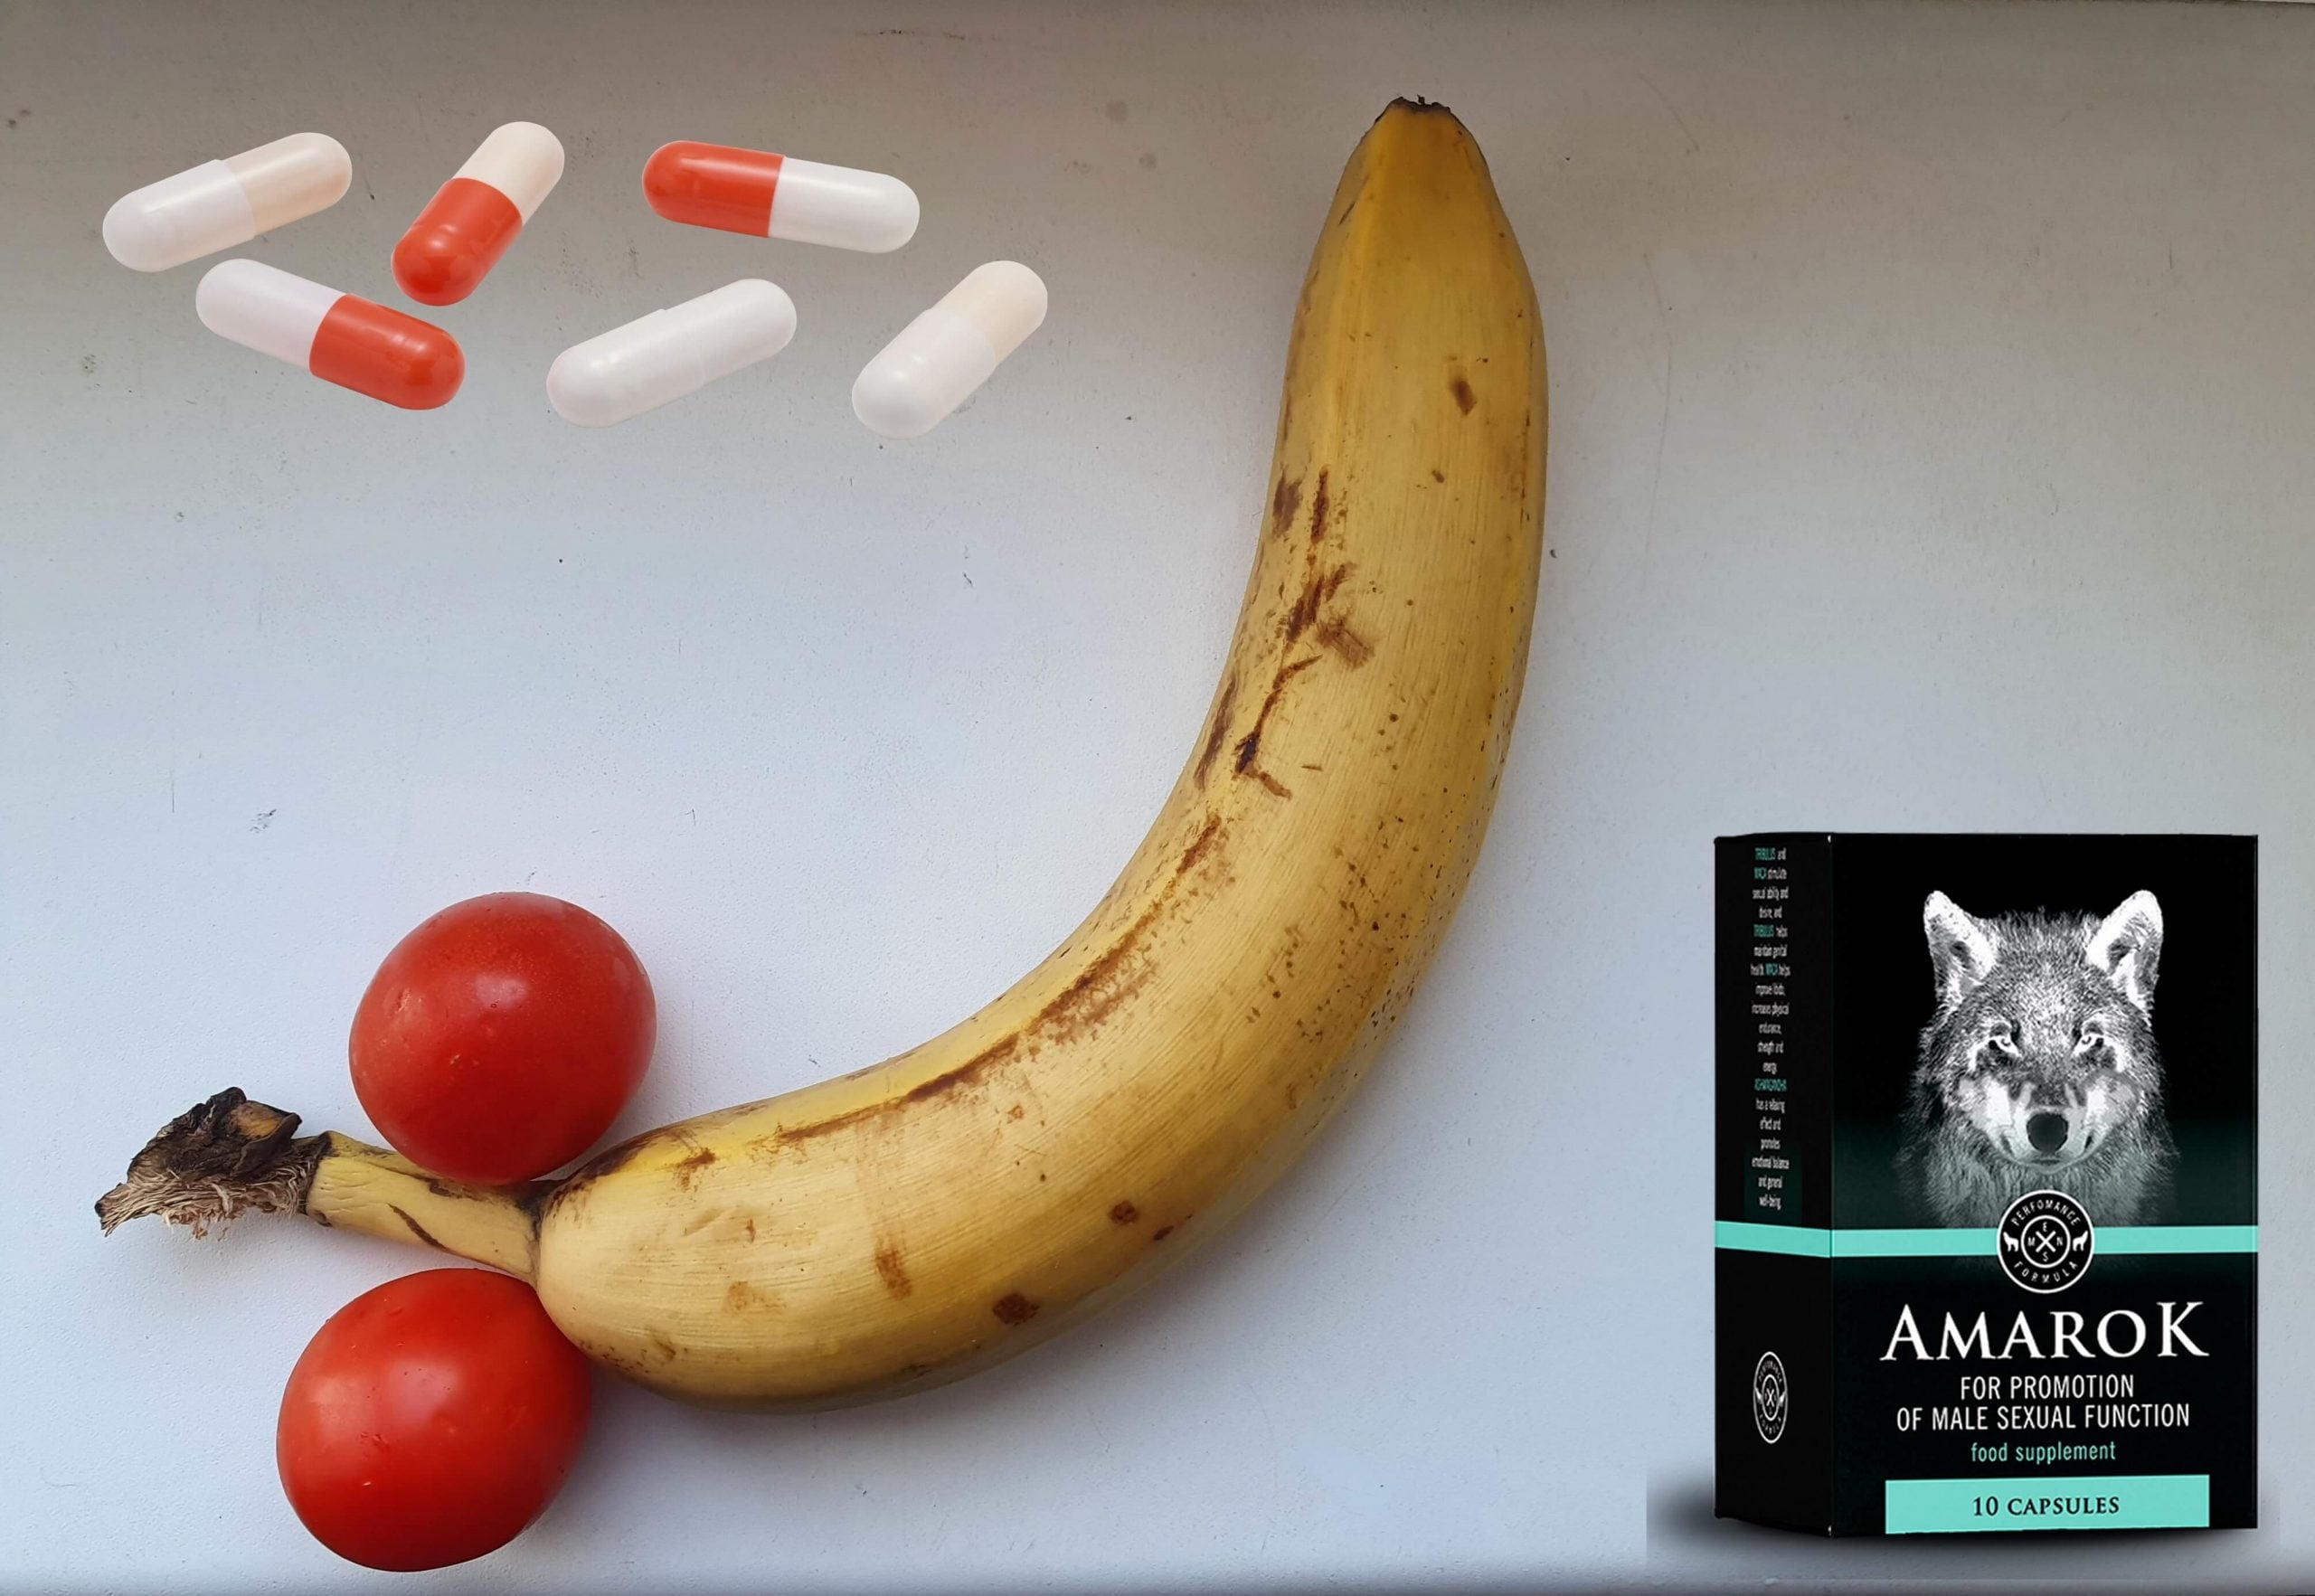 Strong erection with Amarok capsules for potency